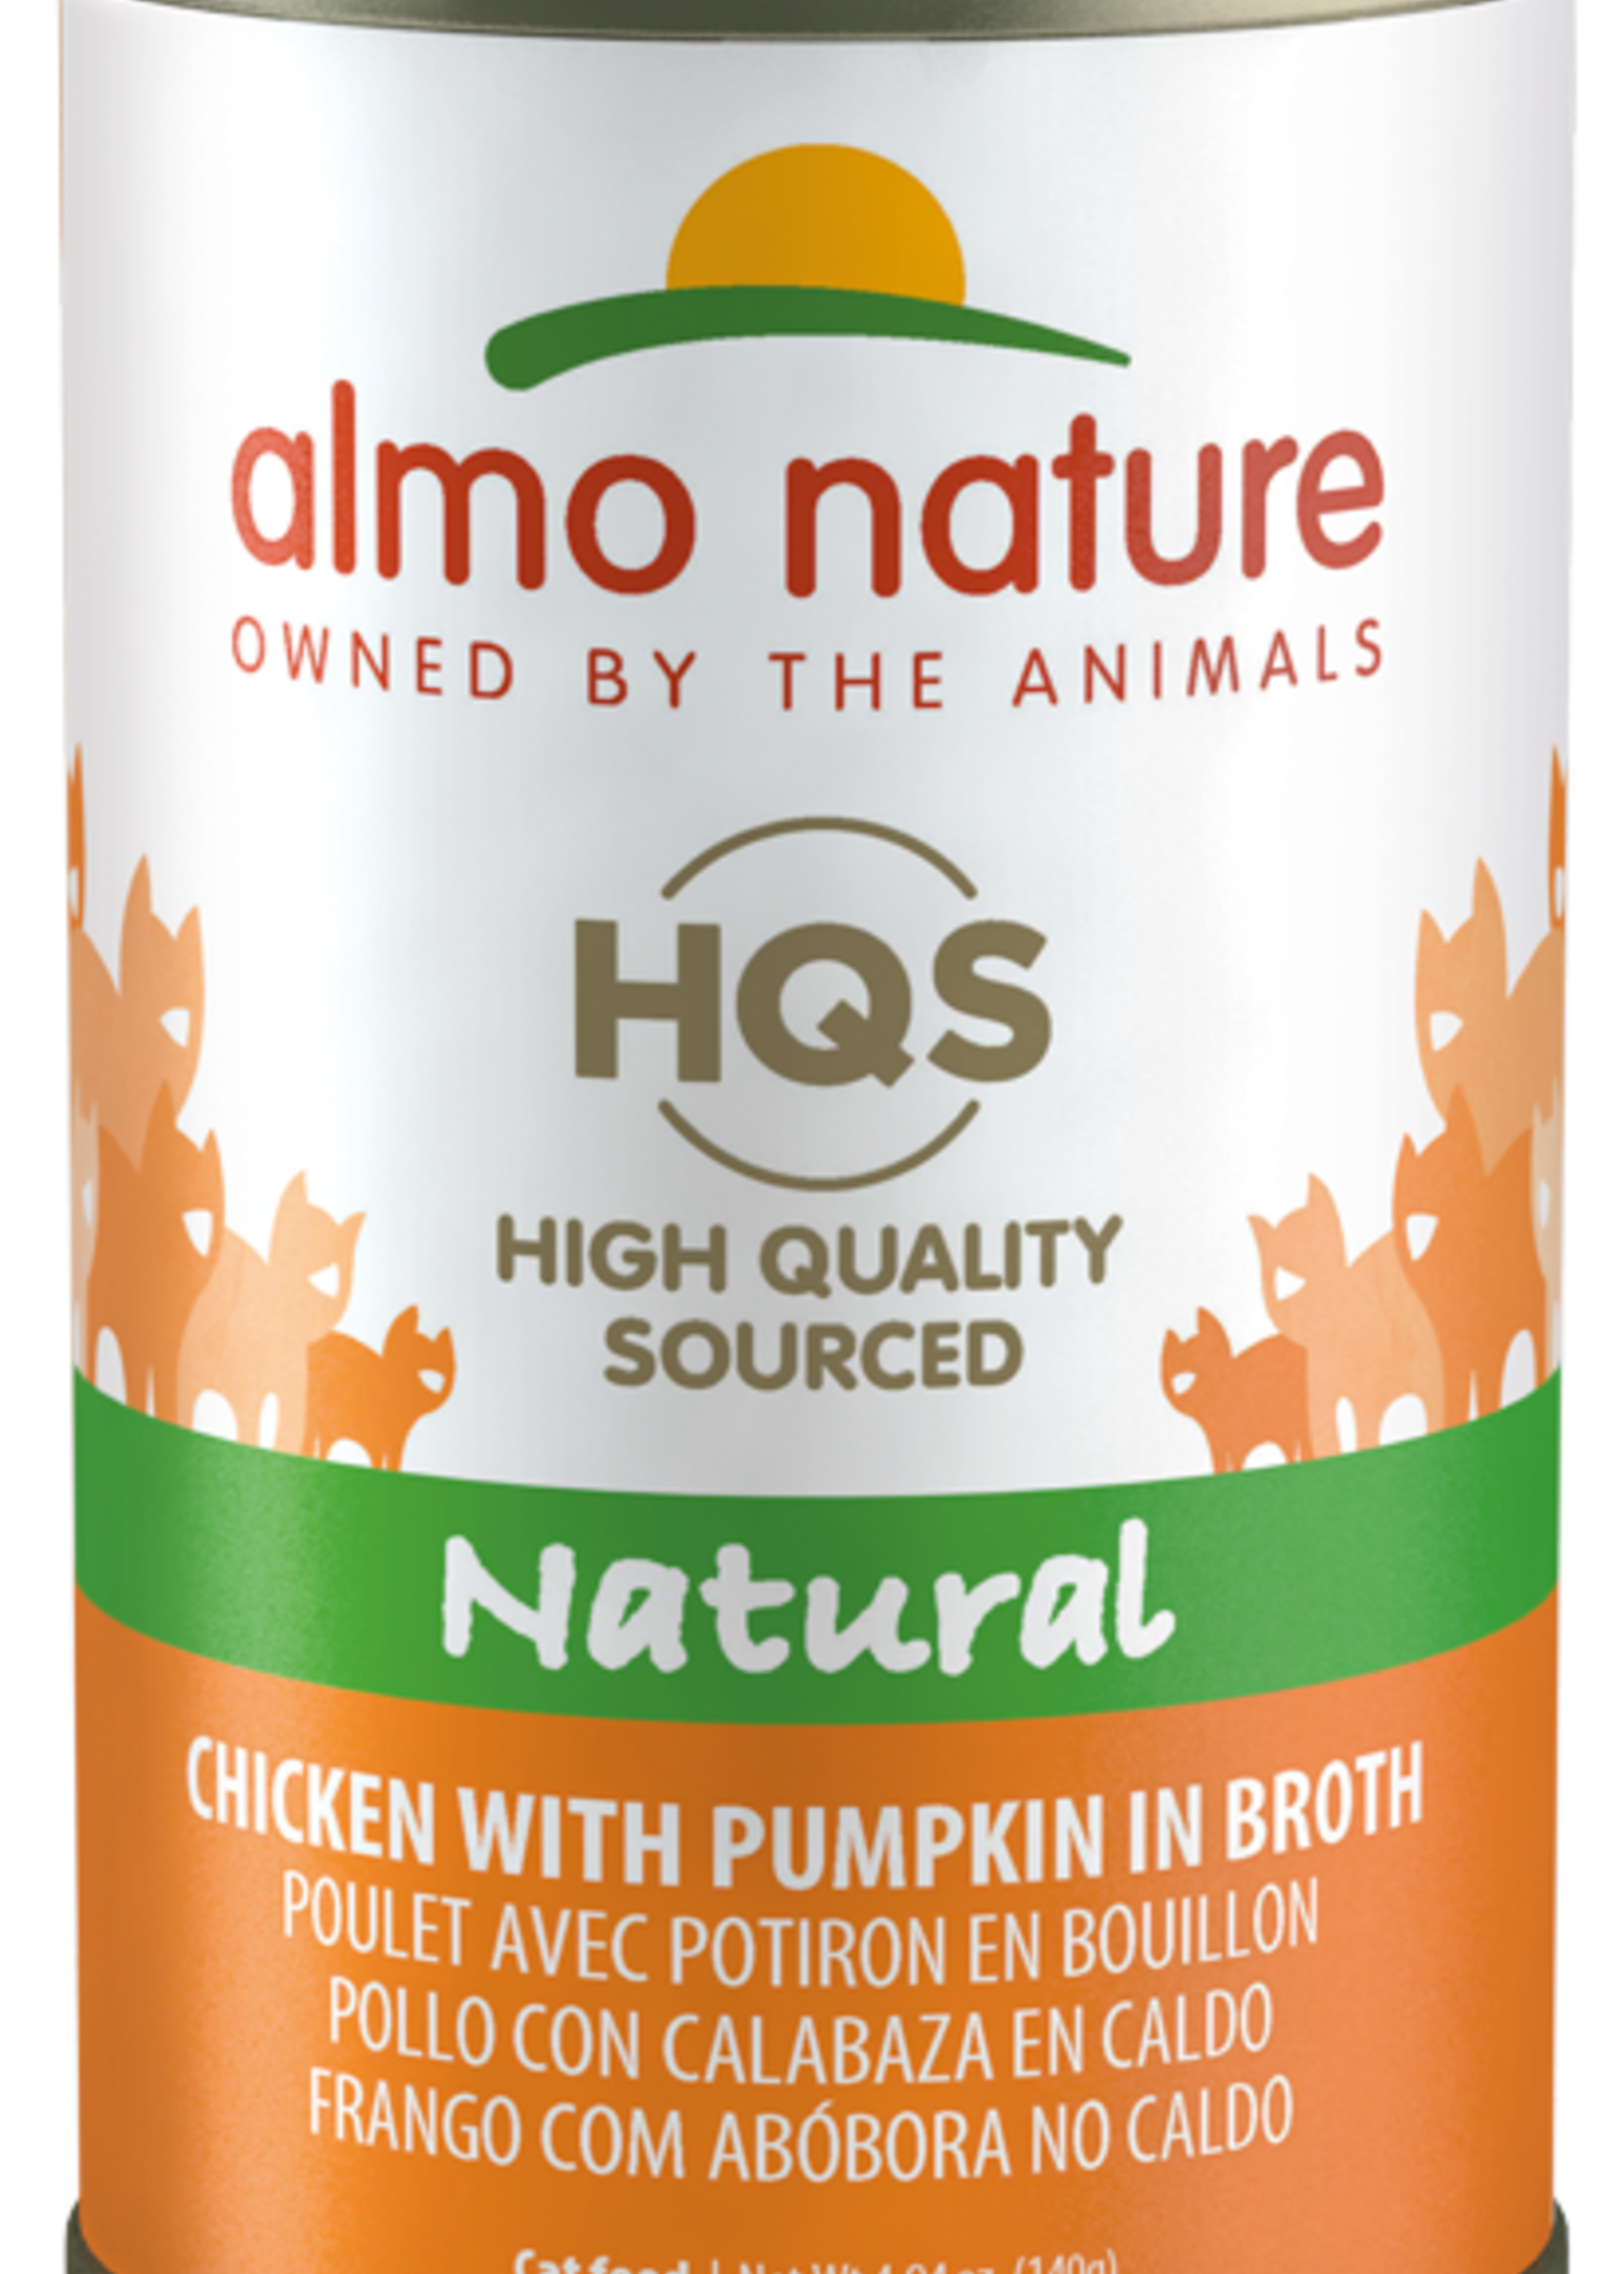 Almo Nature© Almo Nature HQS Natural Chicken with Pumpkin in Broth 140g